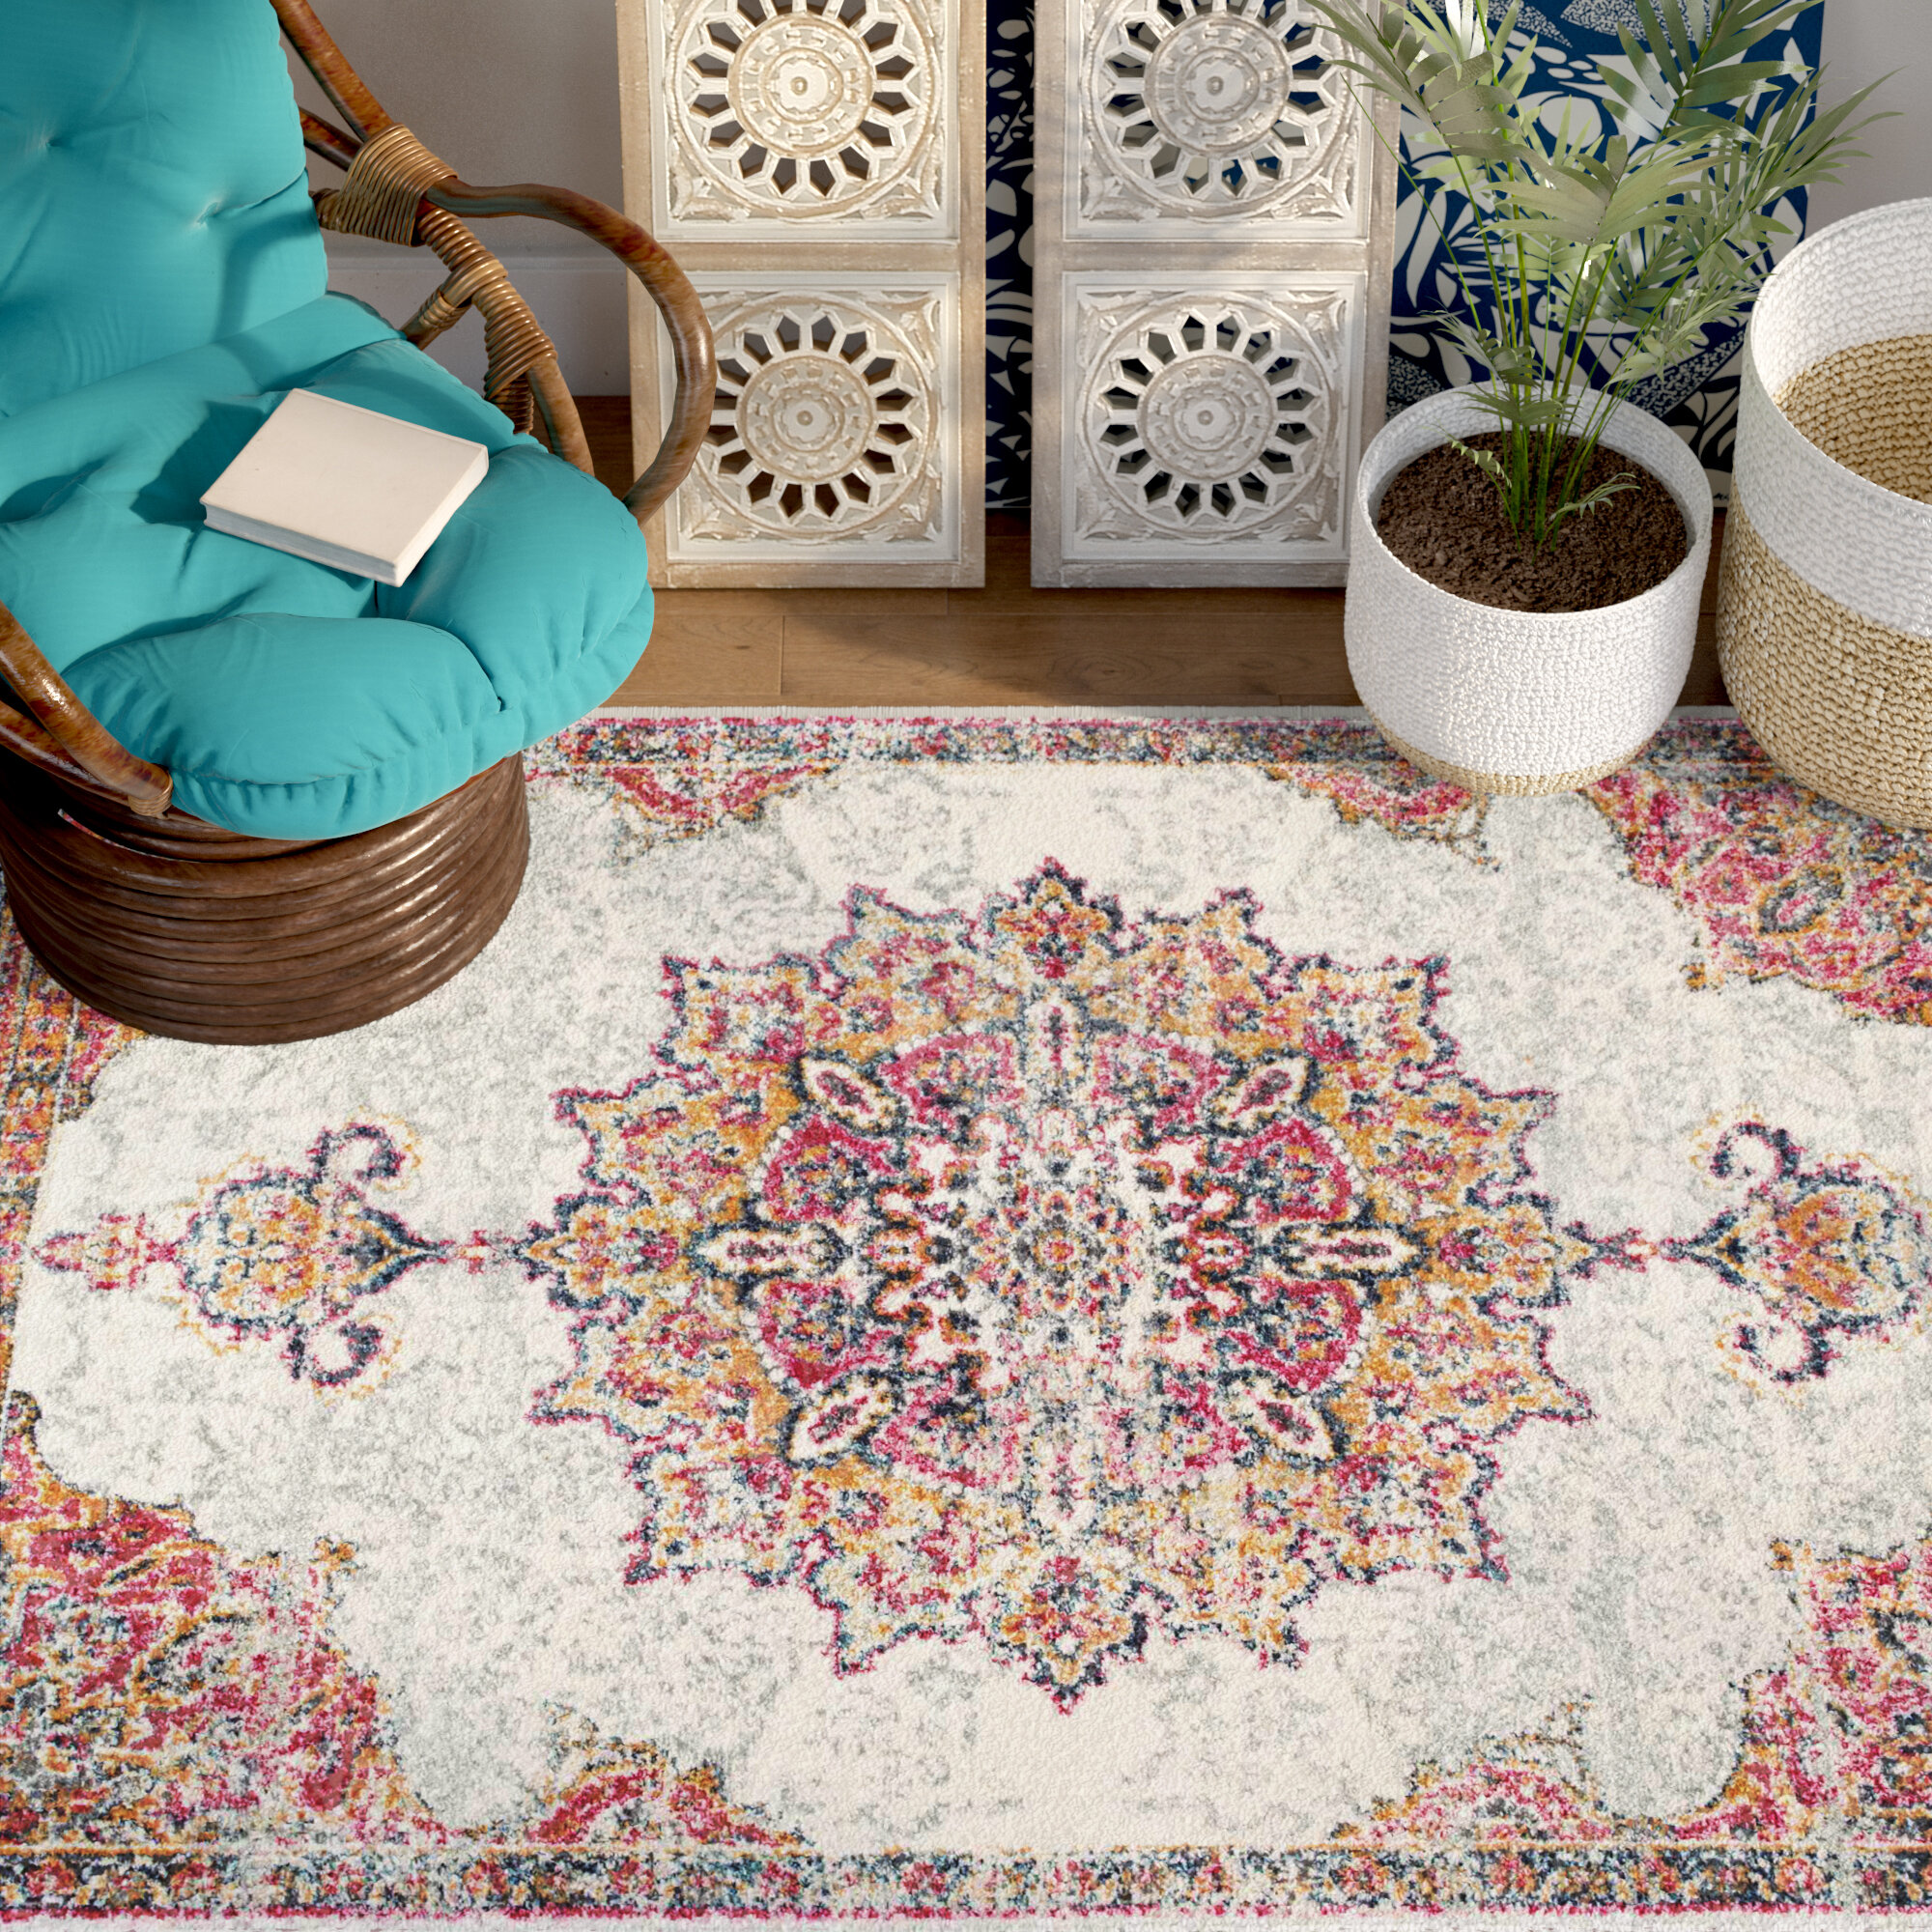 turkt floral rug urbanoutfitters rugs bathroom bright laundry garden big carpets room images pinterest printed arquitetura best and on